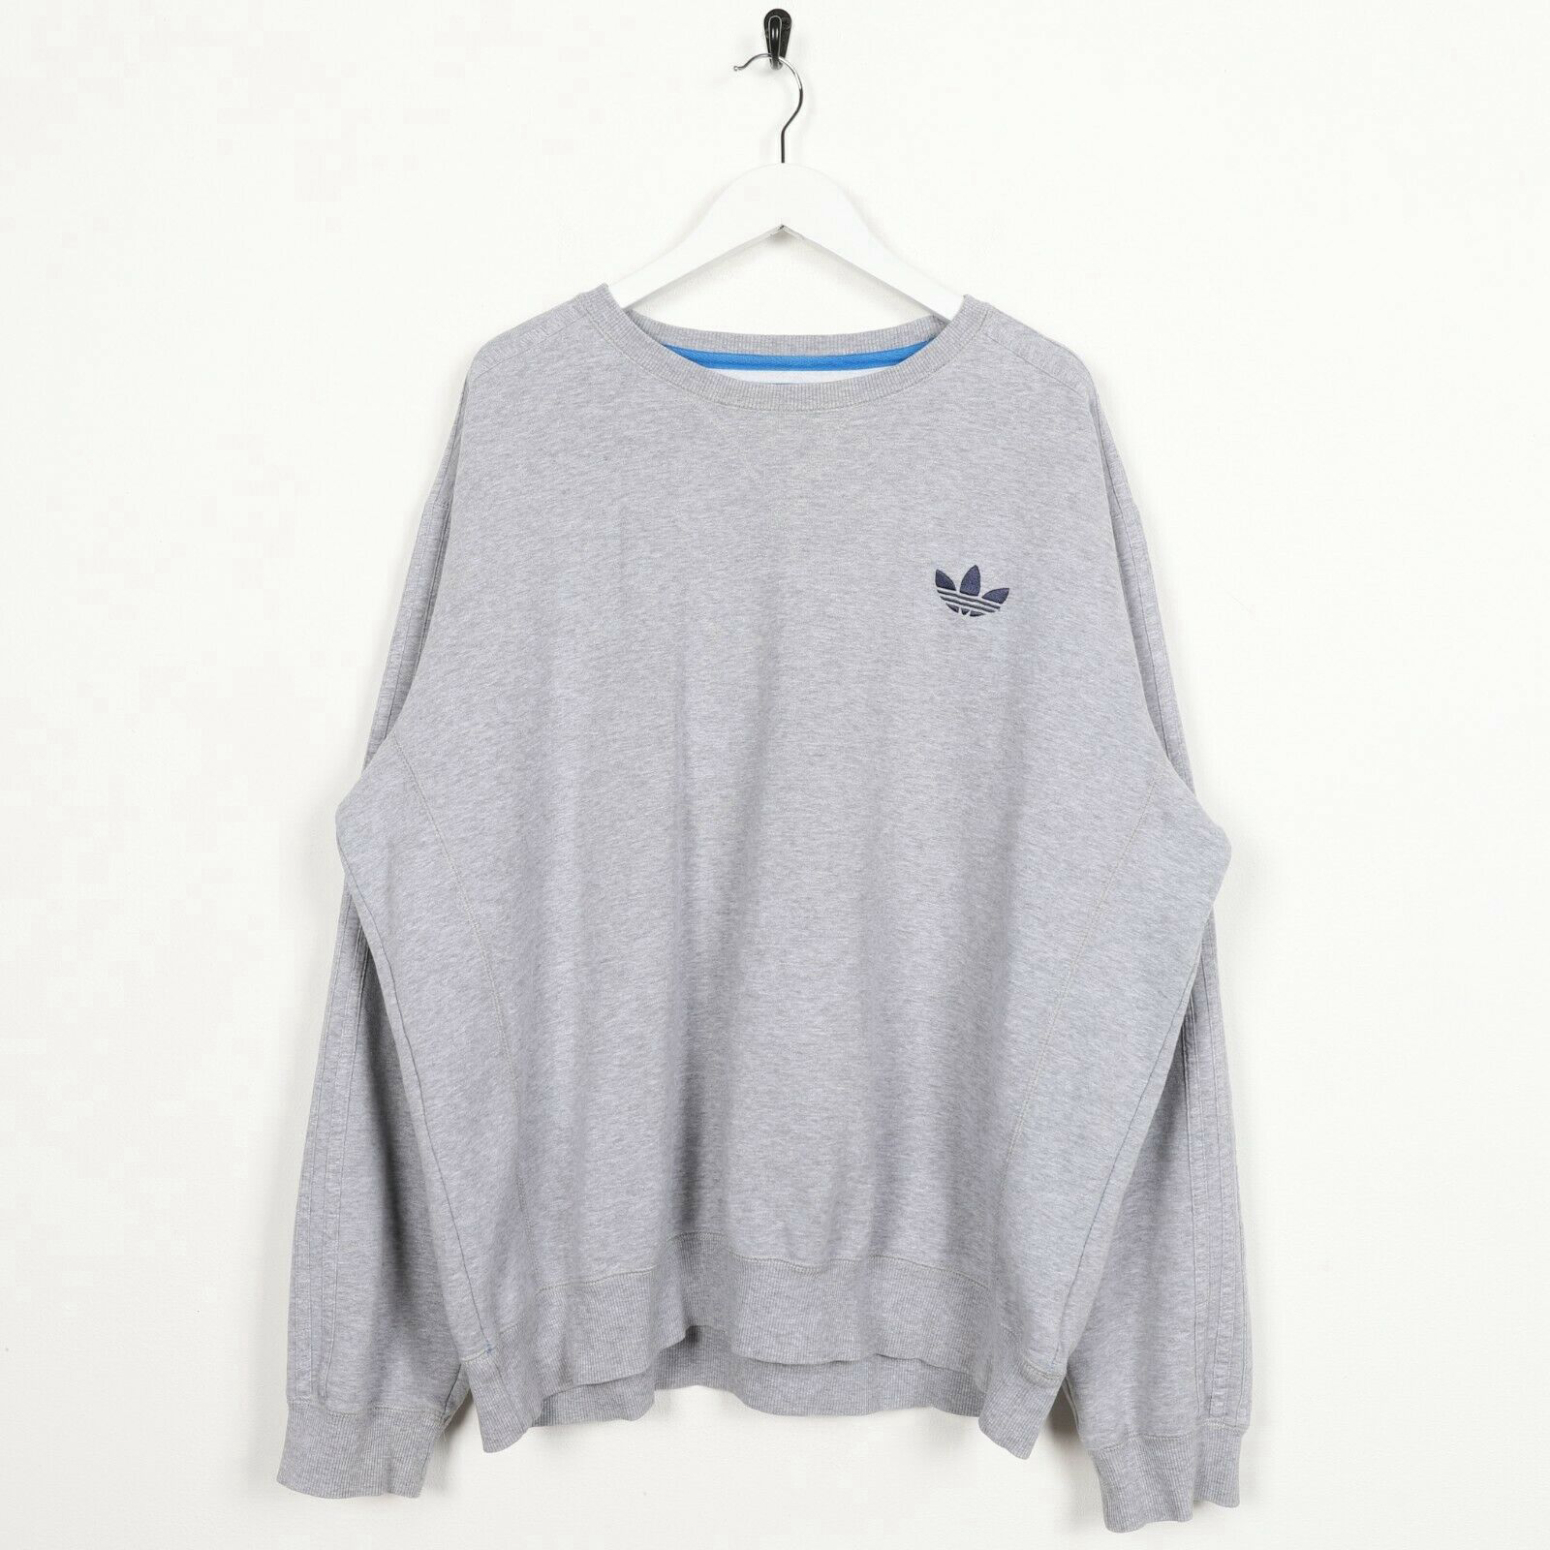 Unisex Vintage ADIDAS ORIGINALS Small Logo Sweatshirt Jumper Grey | XL